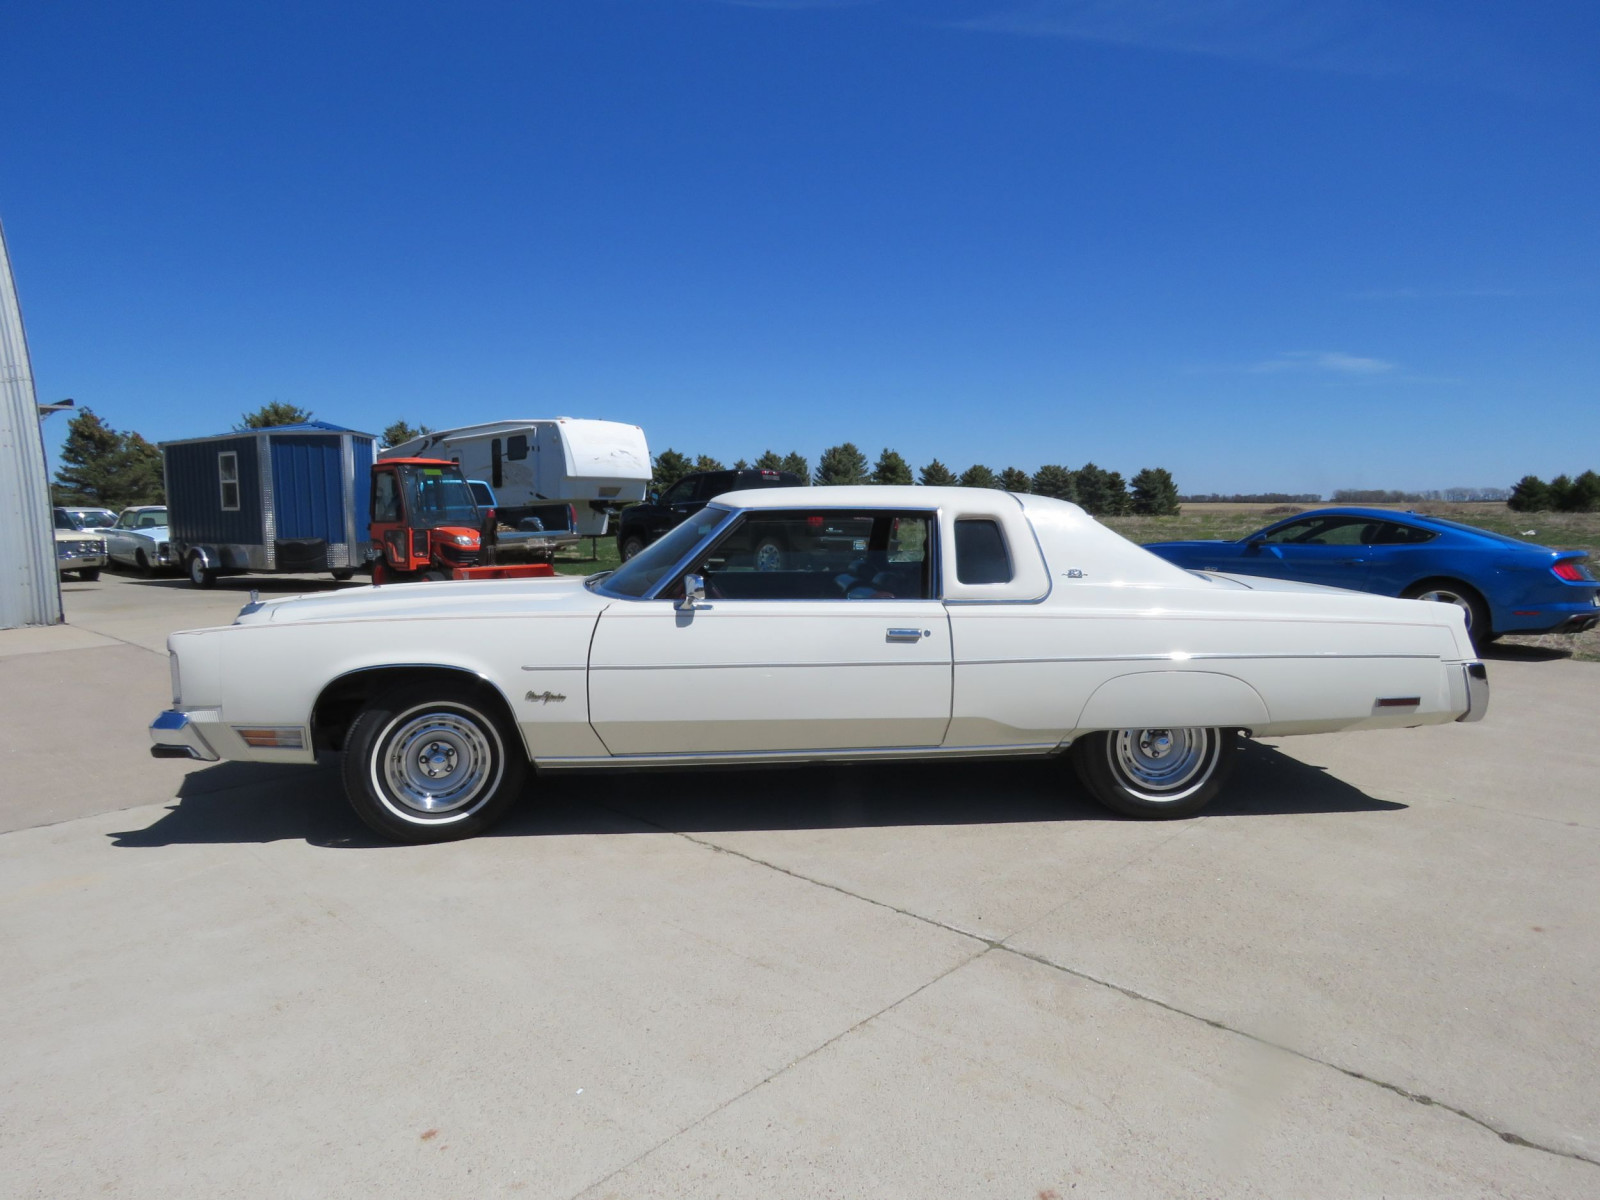 1977 Chrysler New Yorker Brougham 2dr Landau Coupe with ST. Regis - Image 4